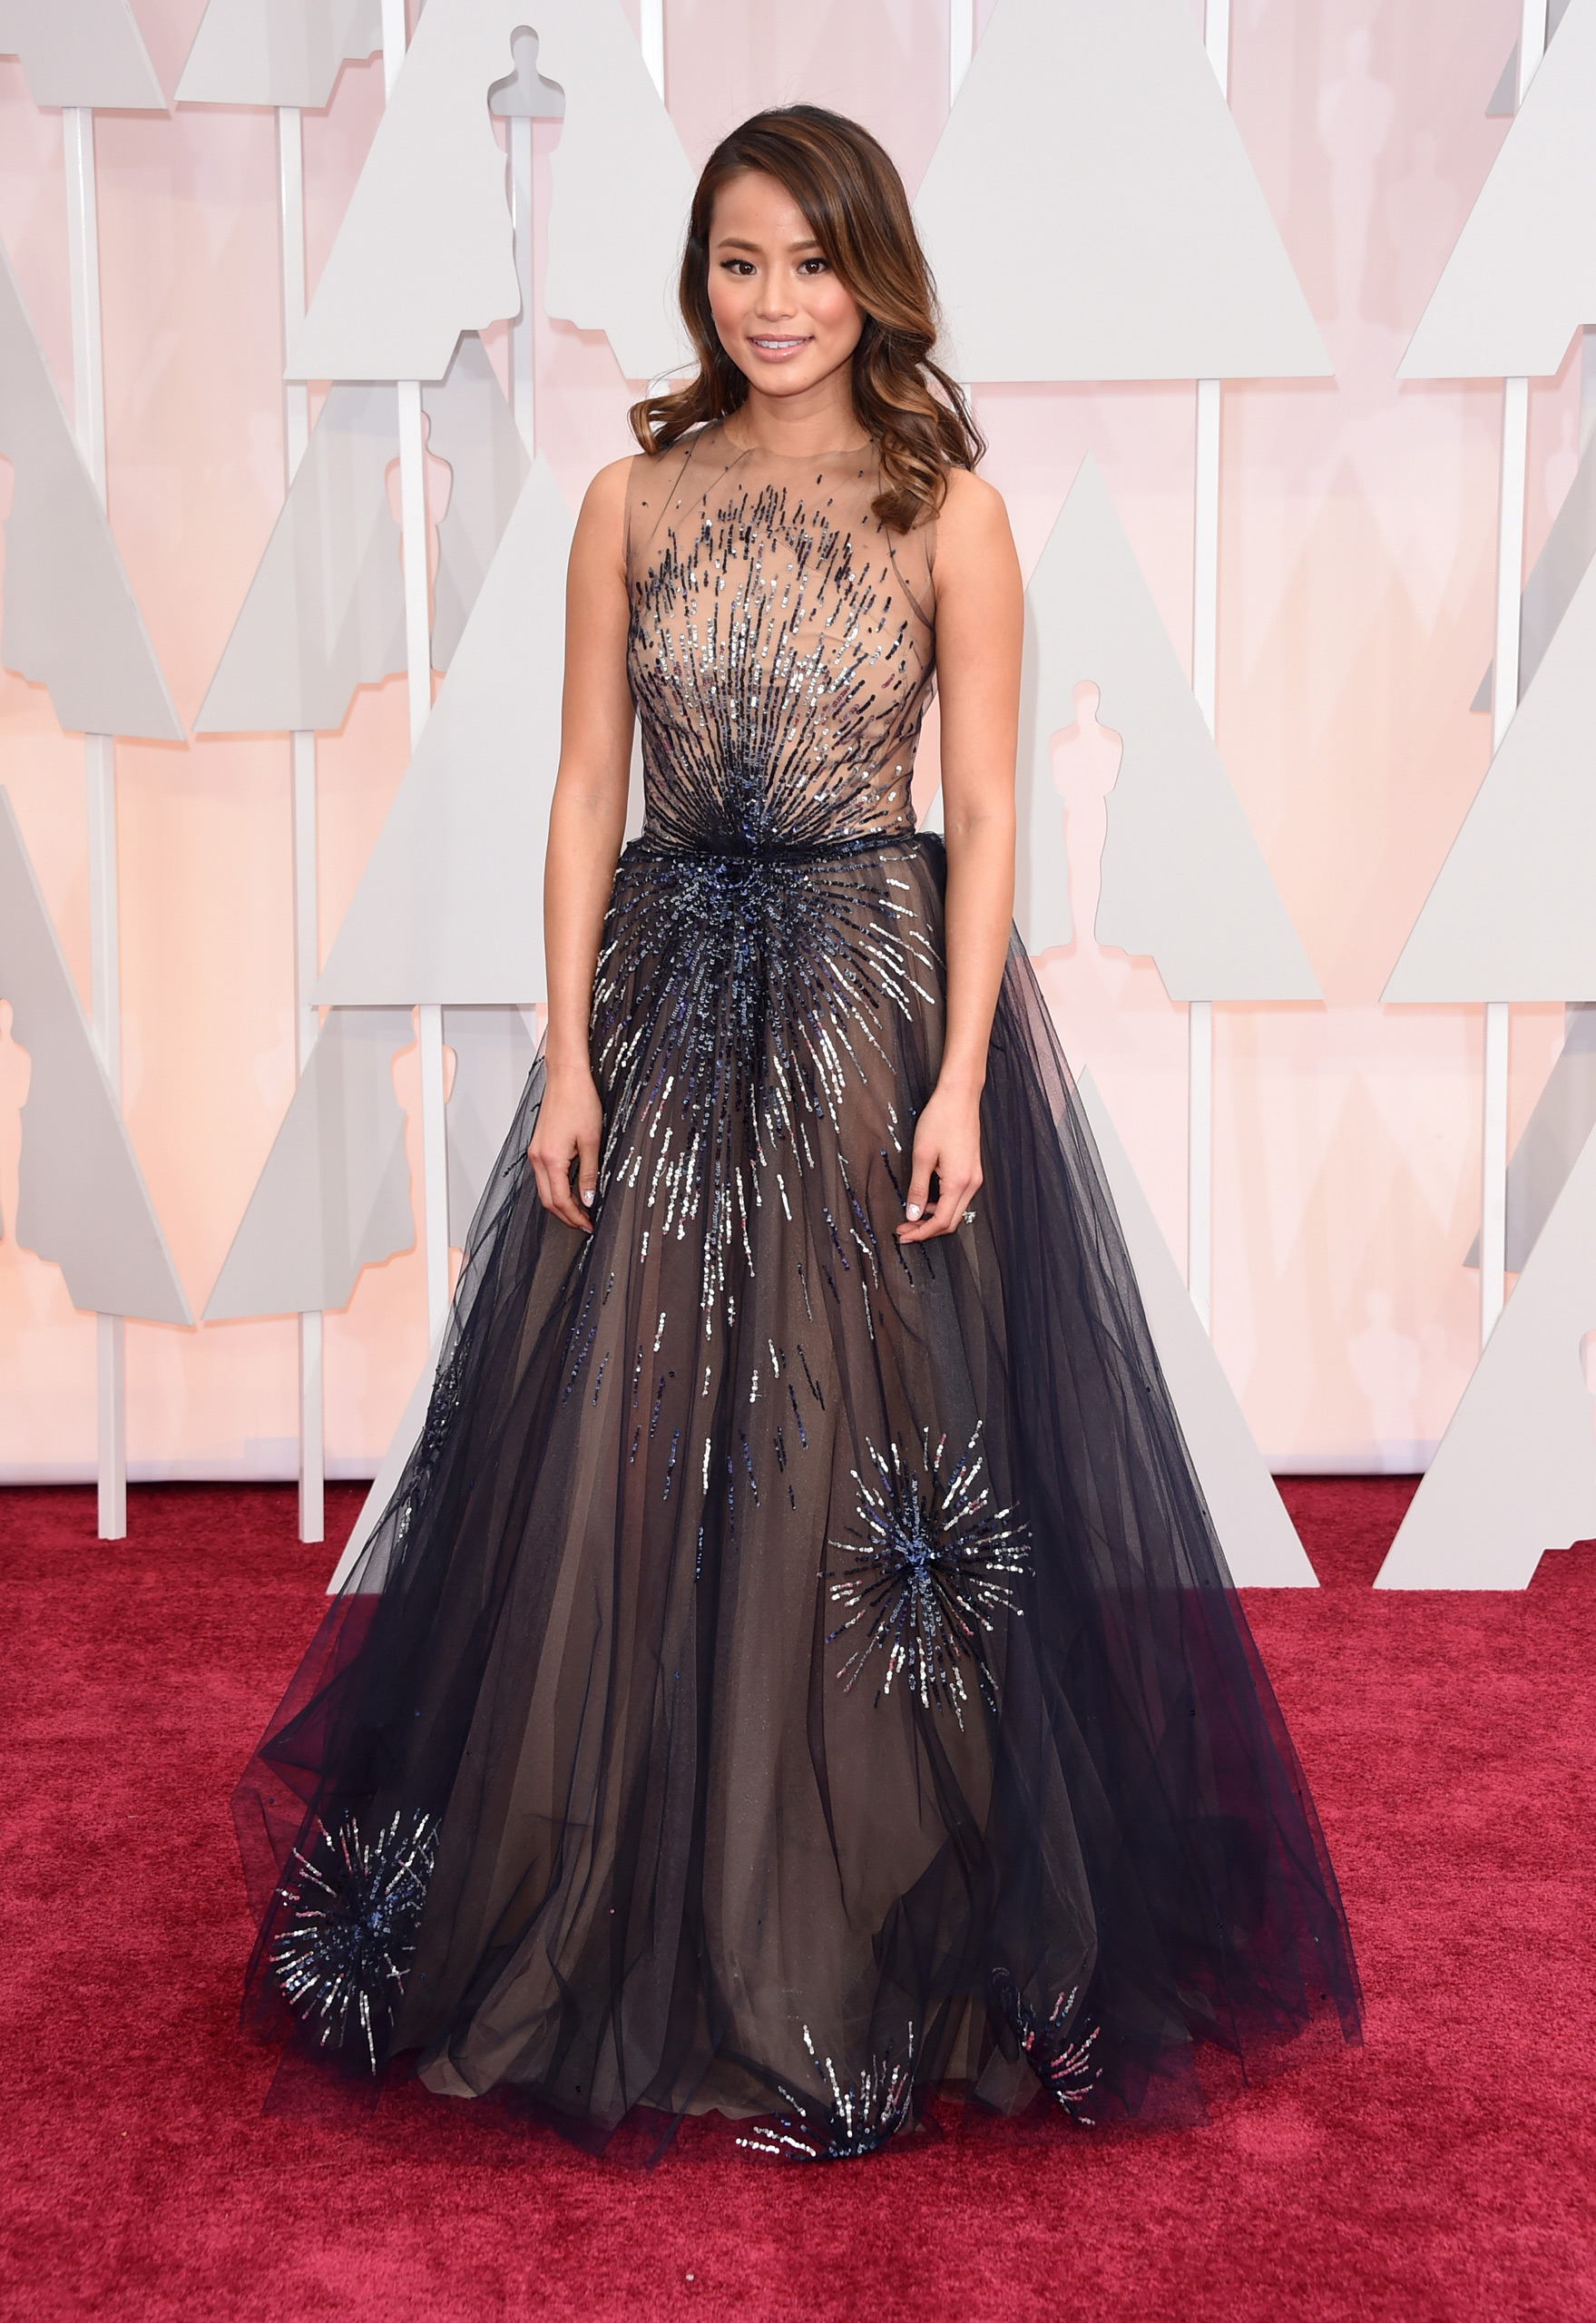 Jamie Chung attends the 87th Annual Academy Awards on Feb. 22, 2015 in Hollywood, Calif.